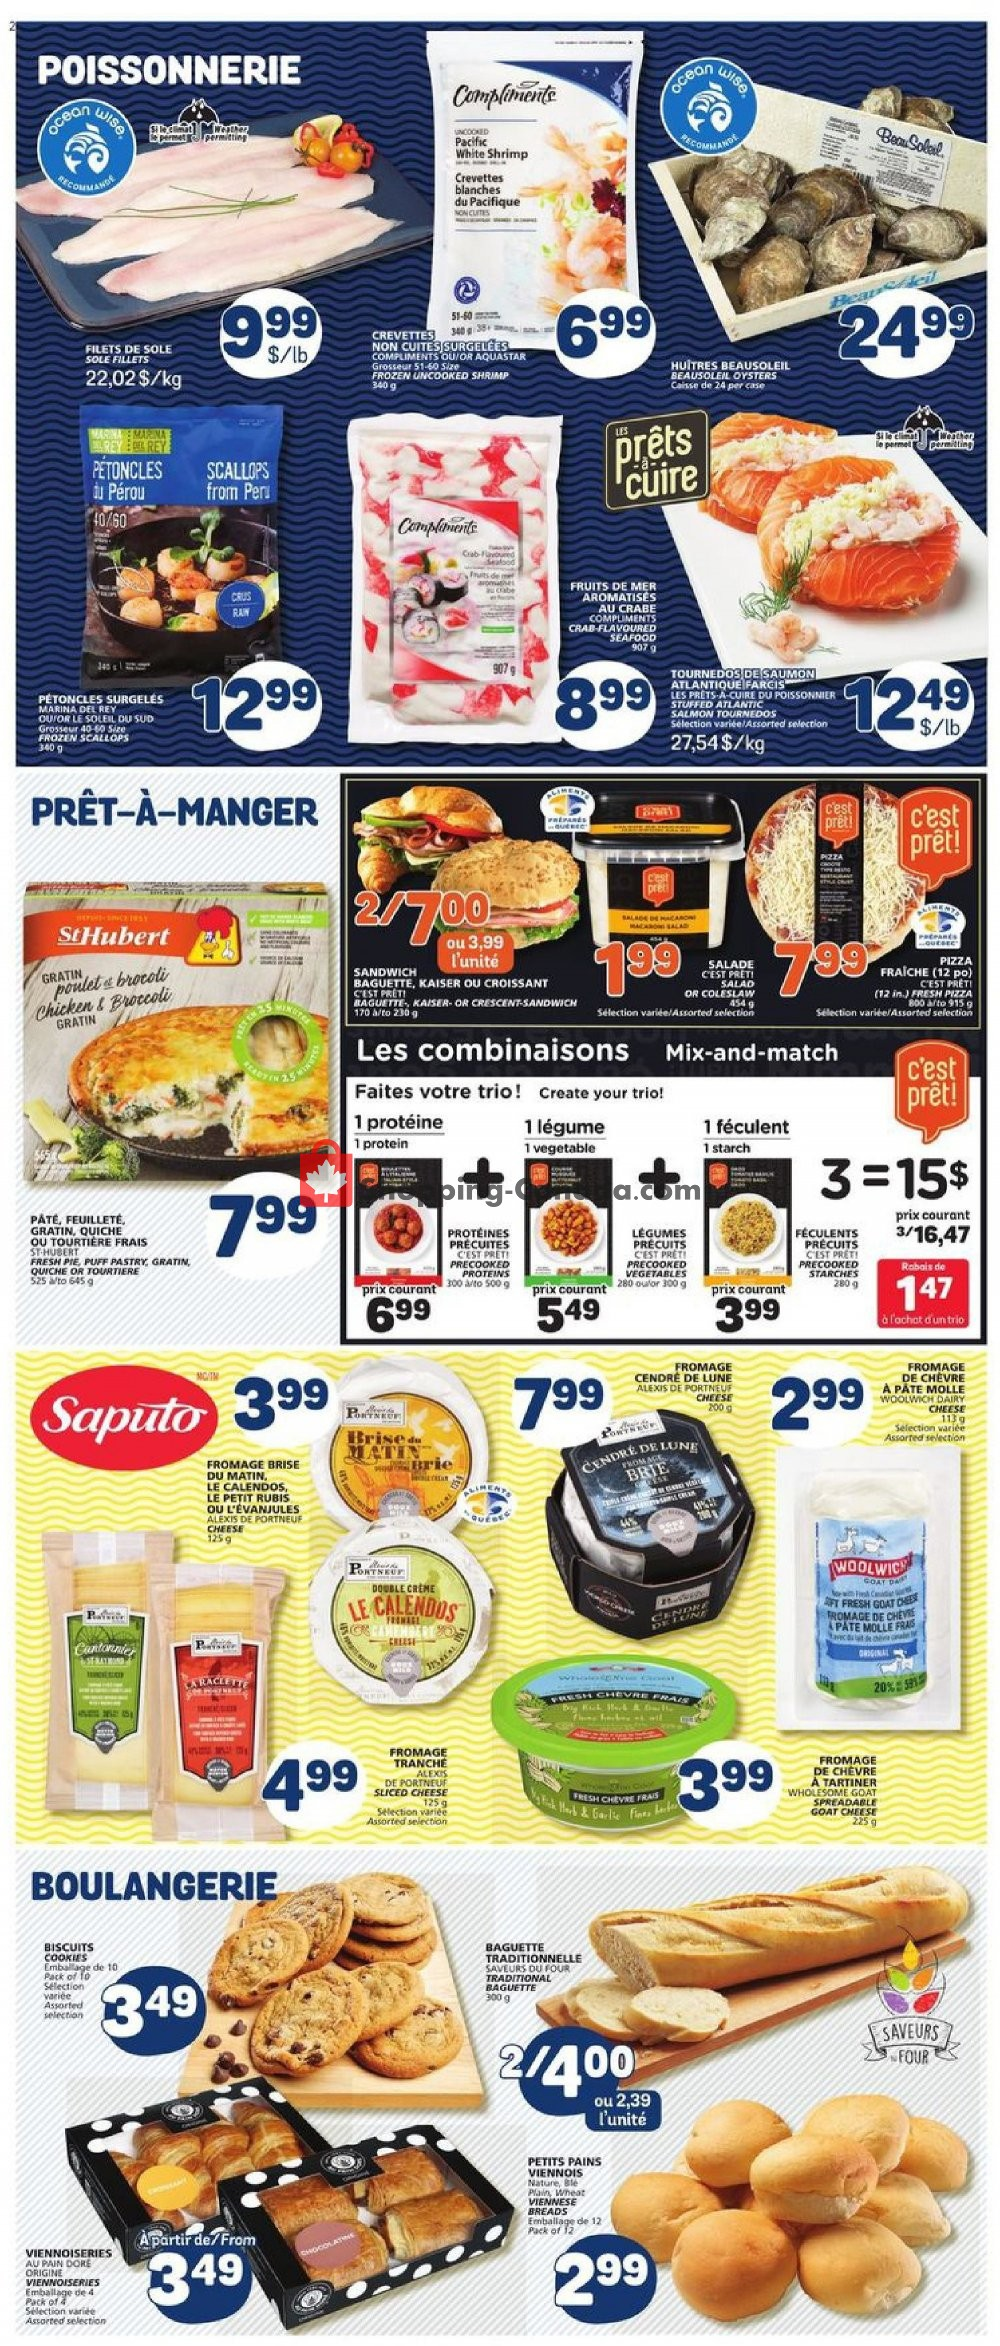 Flyer Marche Bonichoix Canada - from Thursday October 10, 2019 to Wednesday October 16, 2019